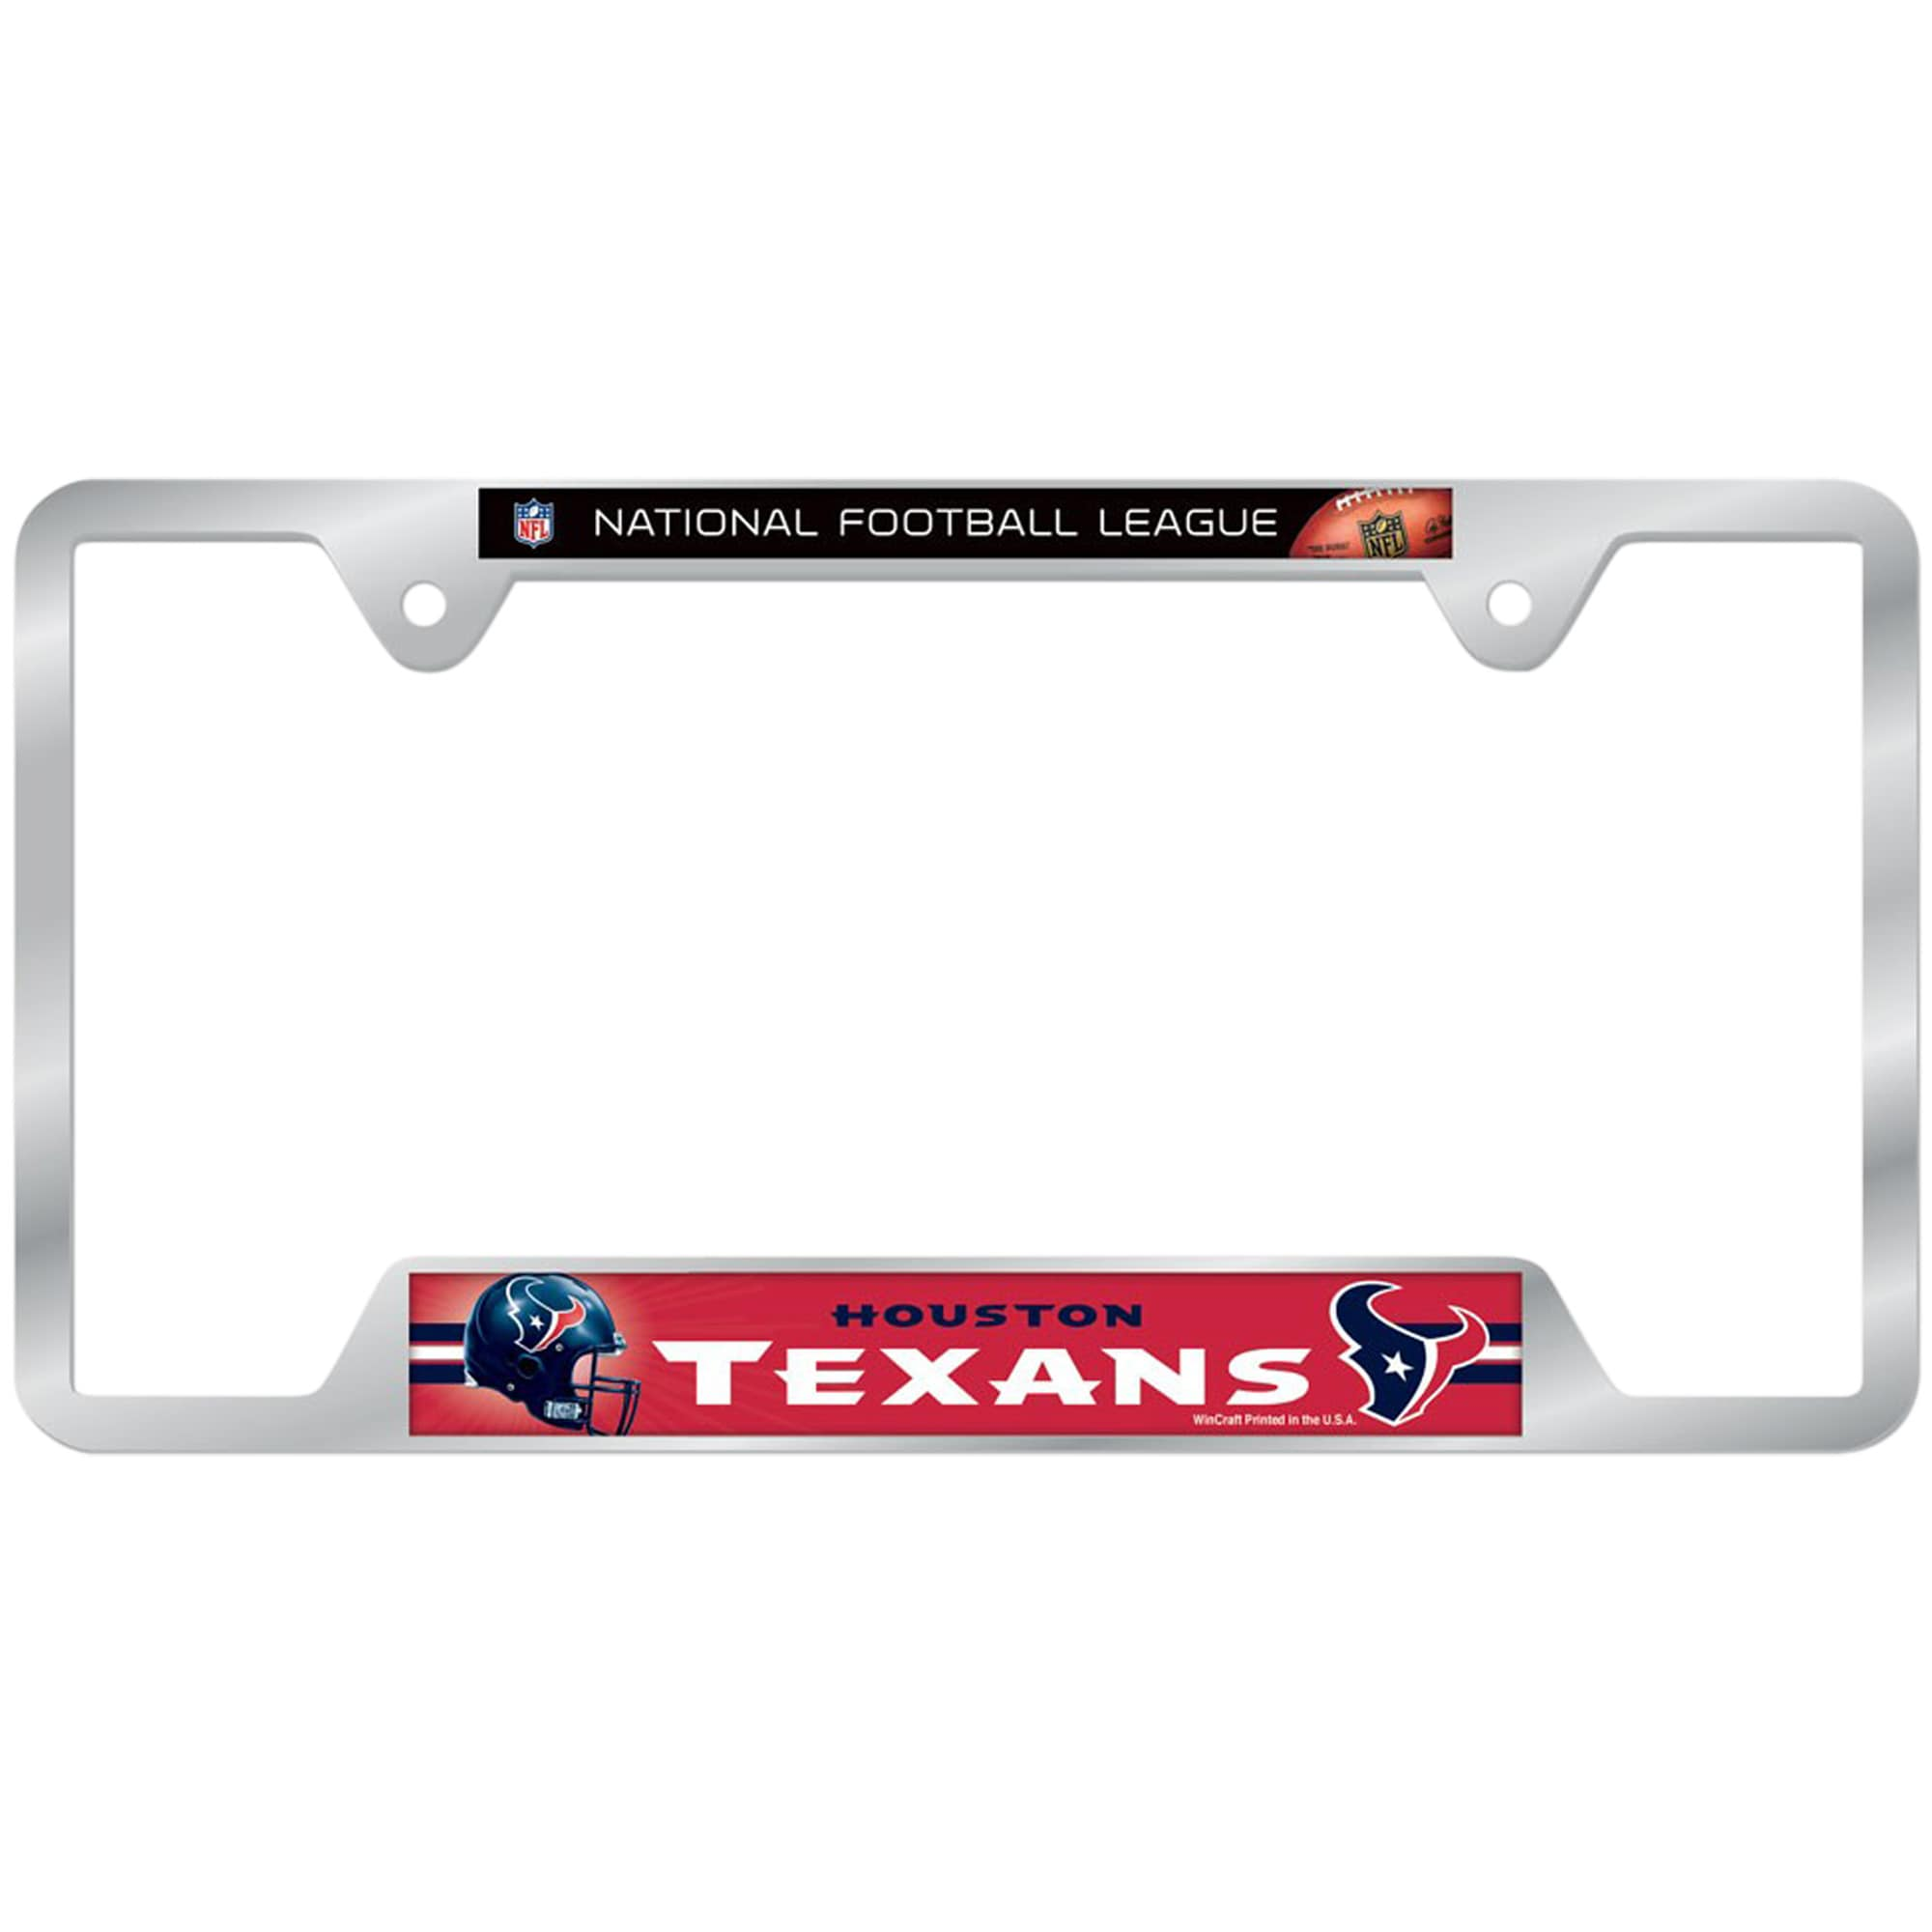 Houston Texans WinCraft License Plate Frame